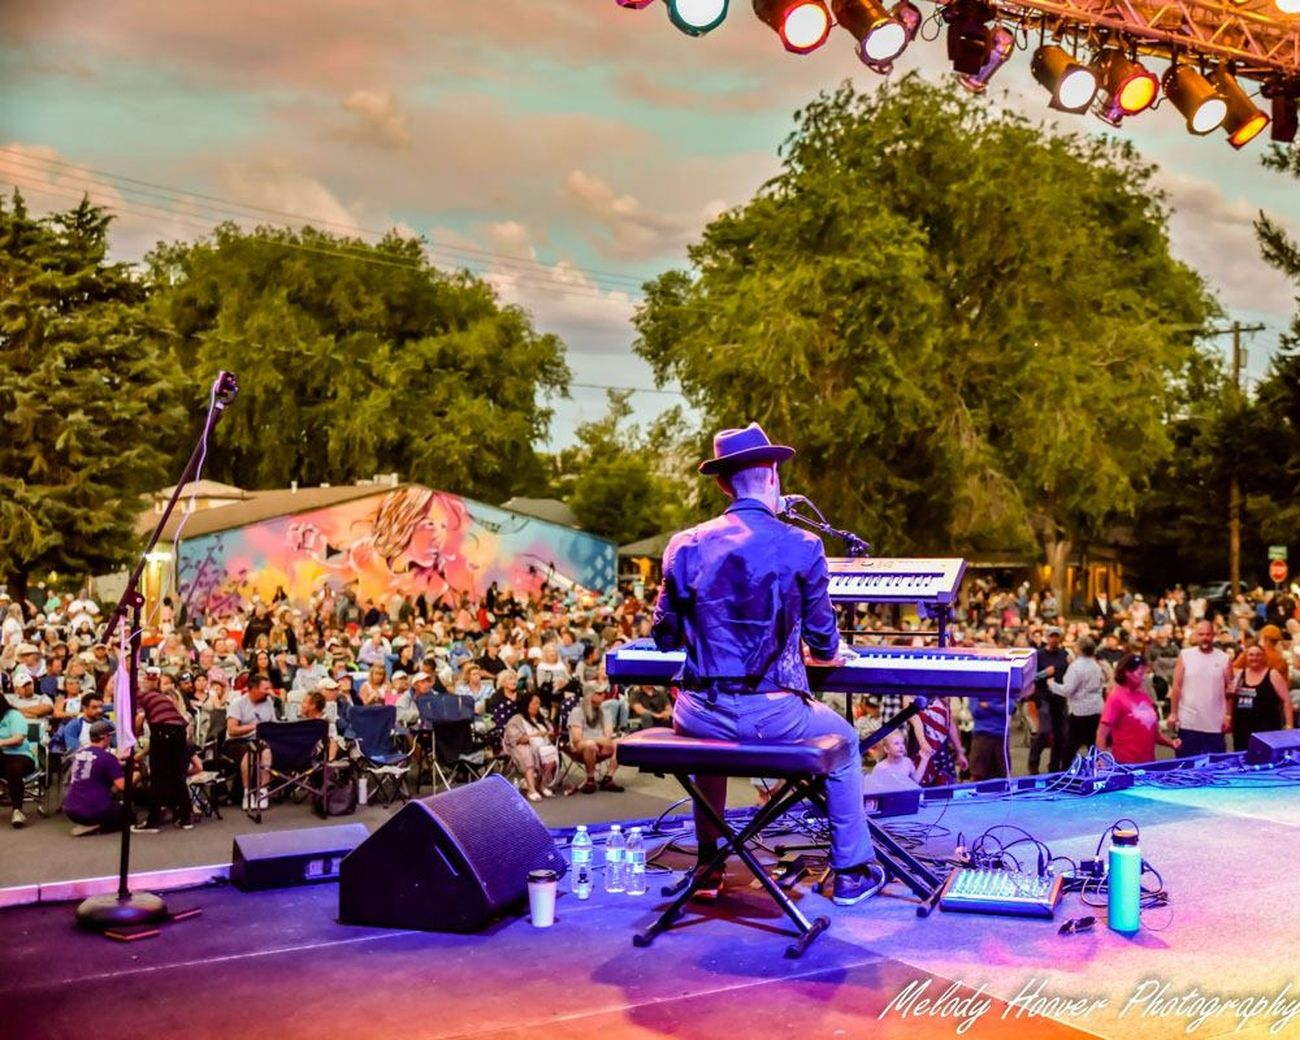 The Novelist played to a large crowd at the Brewery Arts Center in Carson City NV for the Levitt AMP summer series.